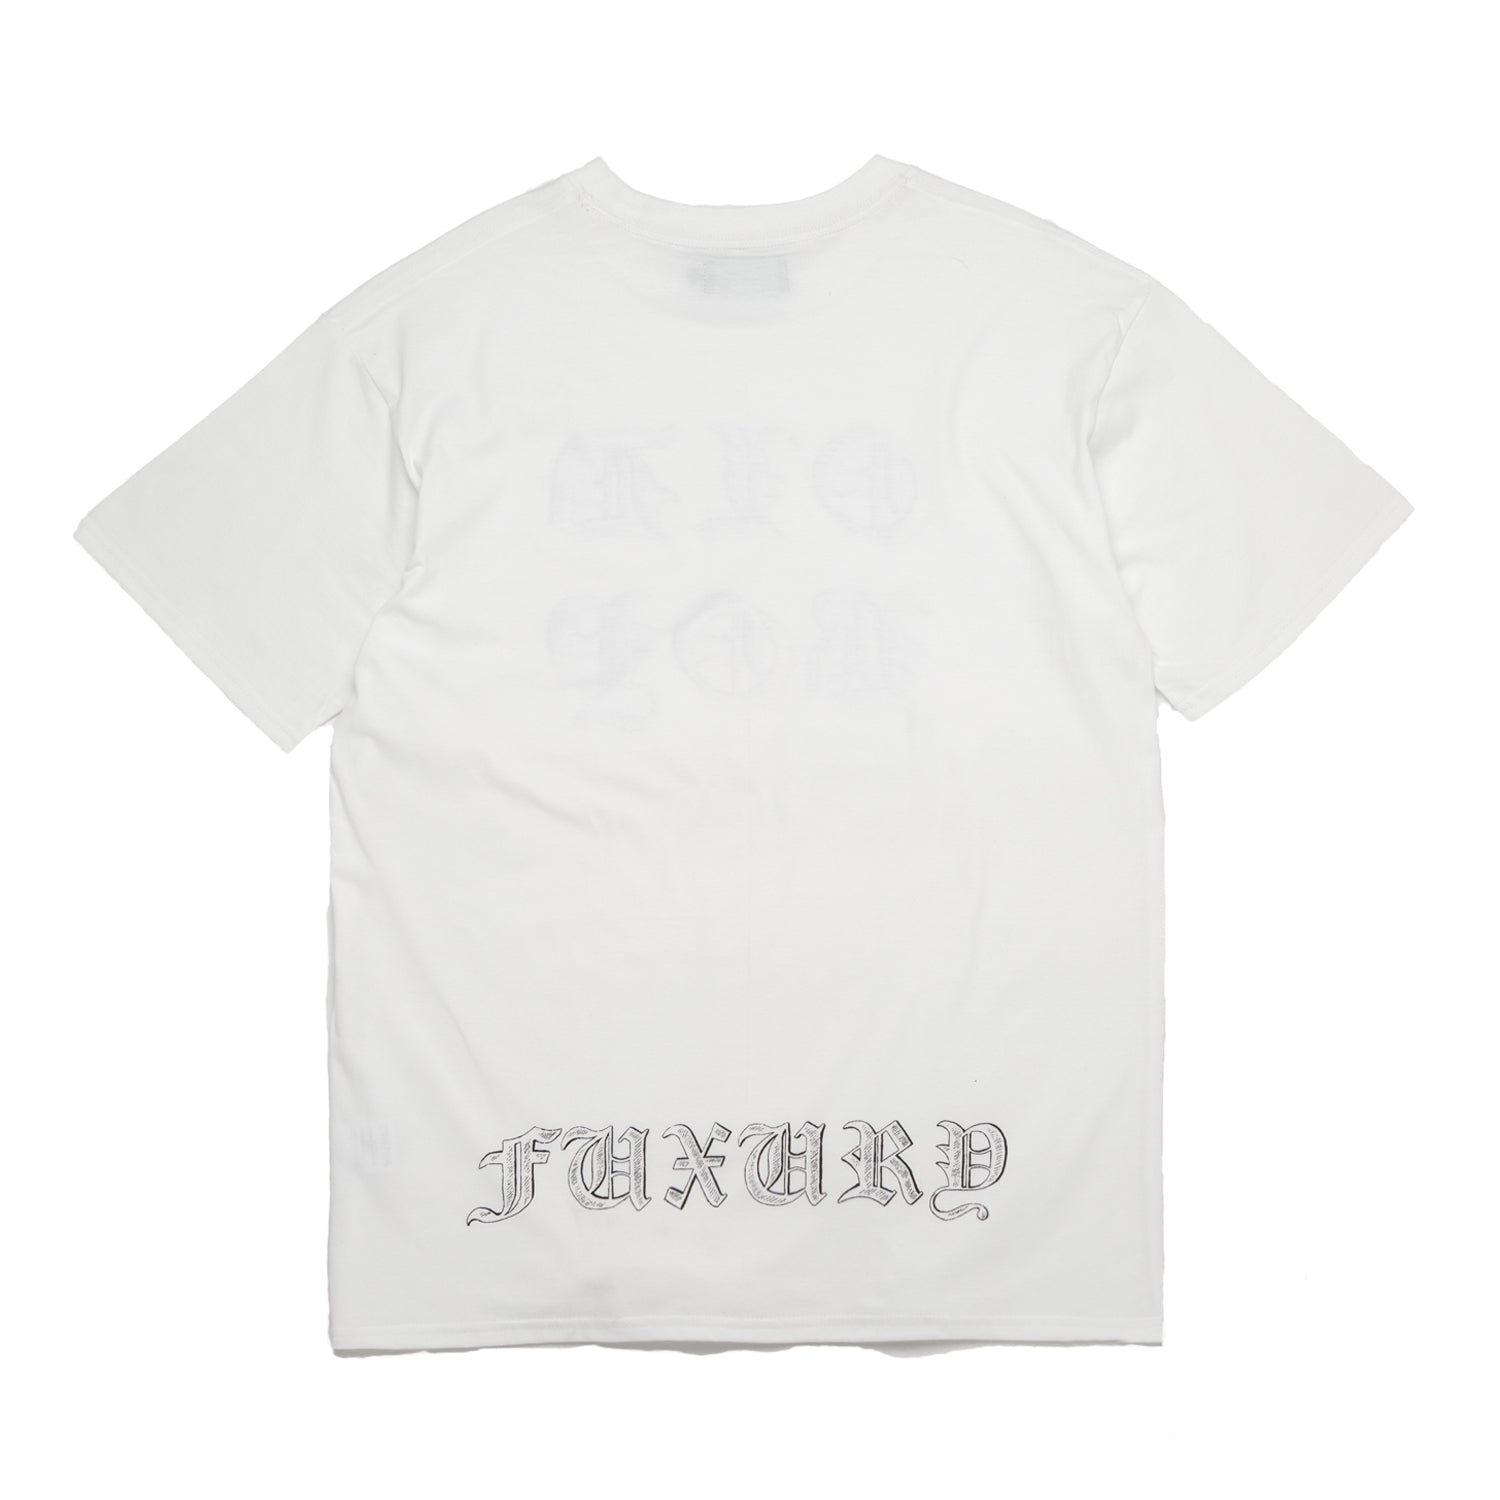 'OLD BOY' WHITE TEE